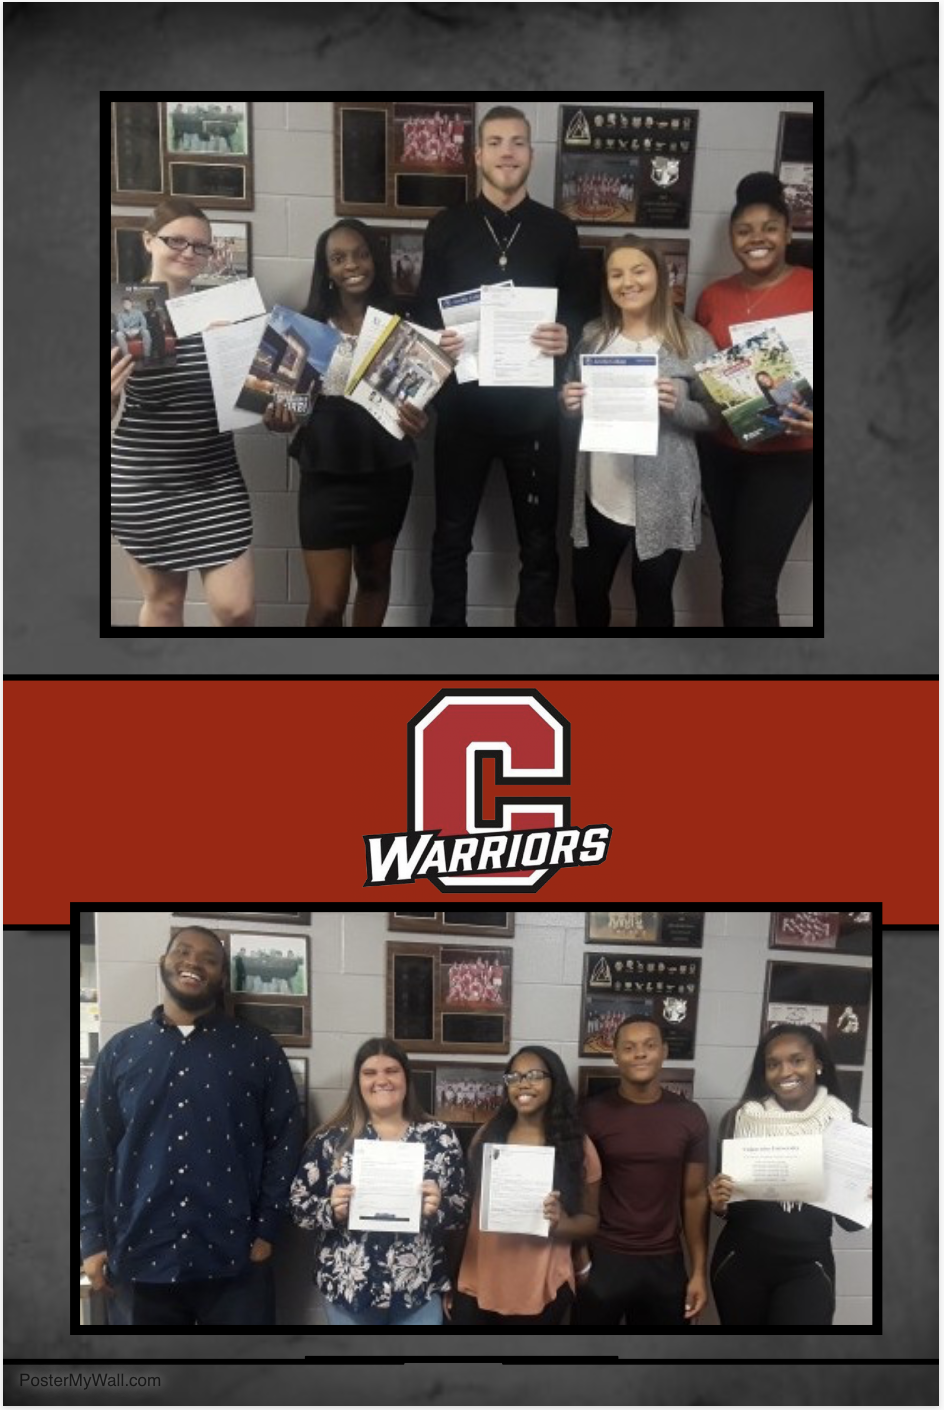 Warriors Excelling Academically